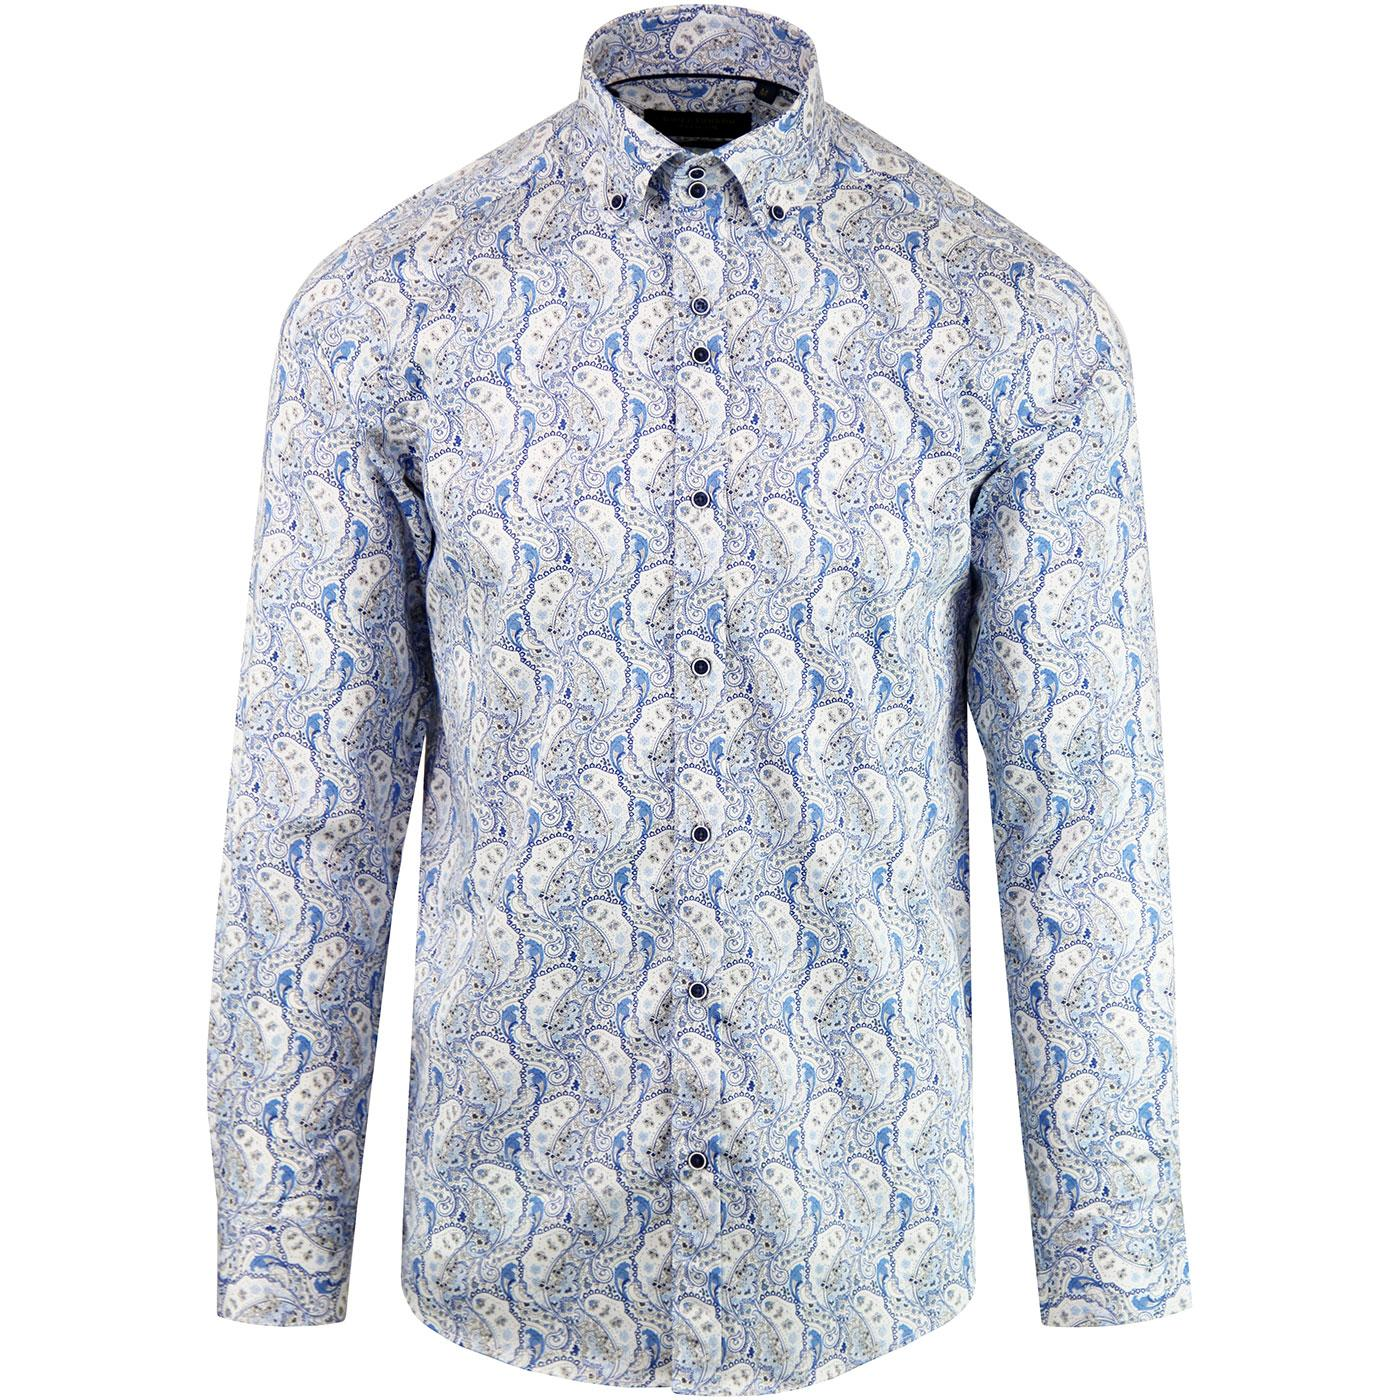 GUIDE LONDON Men's Retro Mod Paisley Dress Shirt